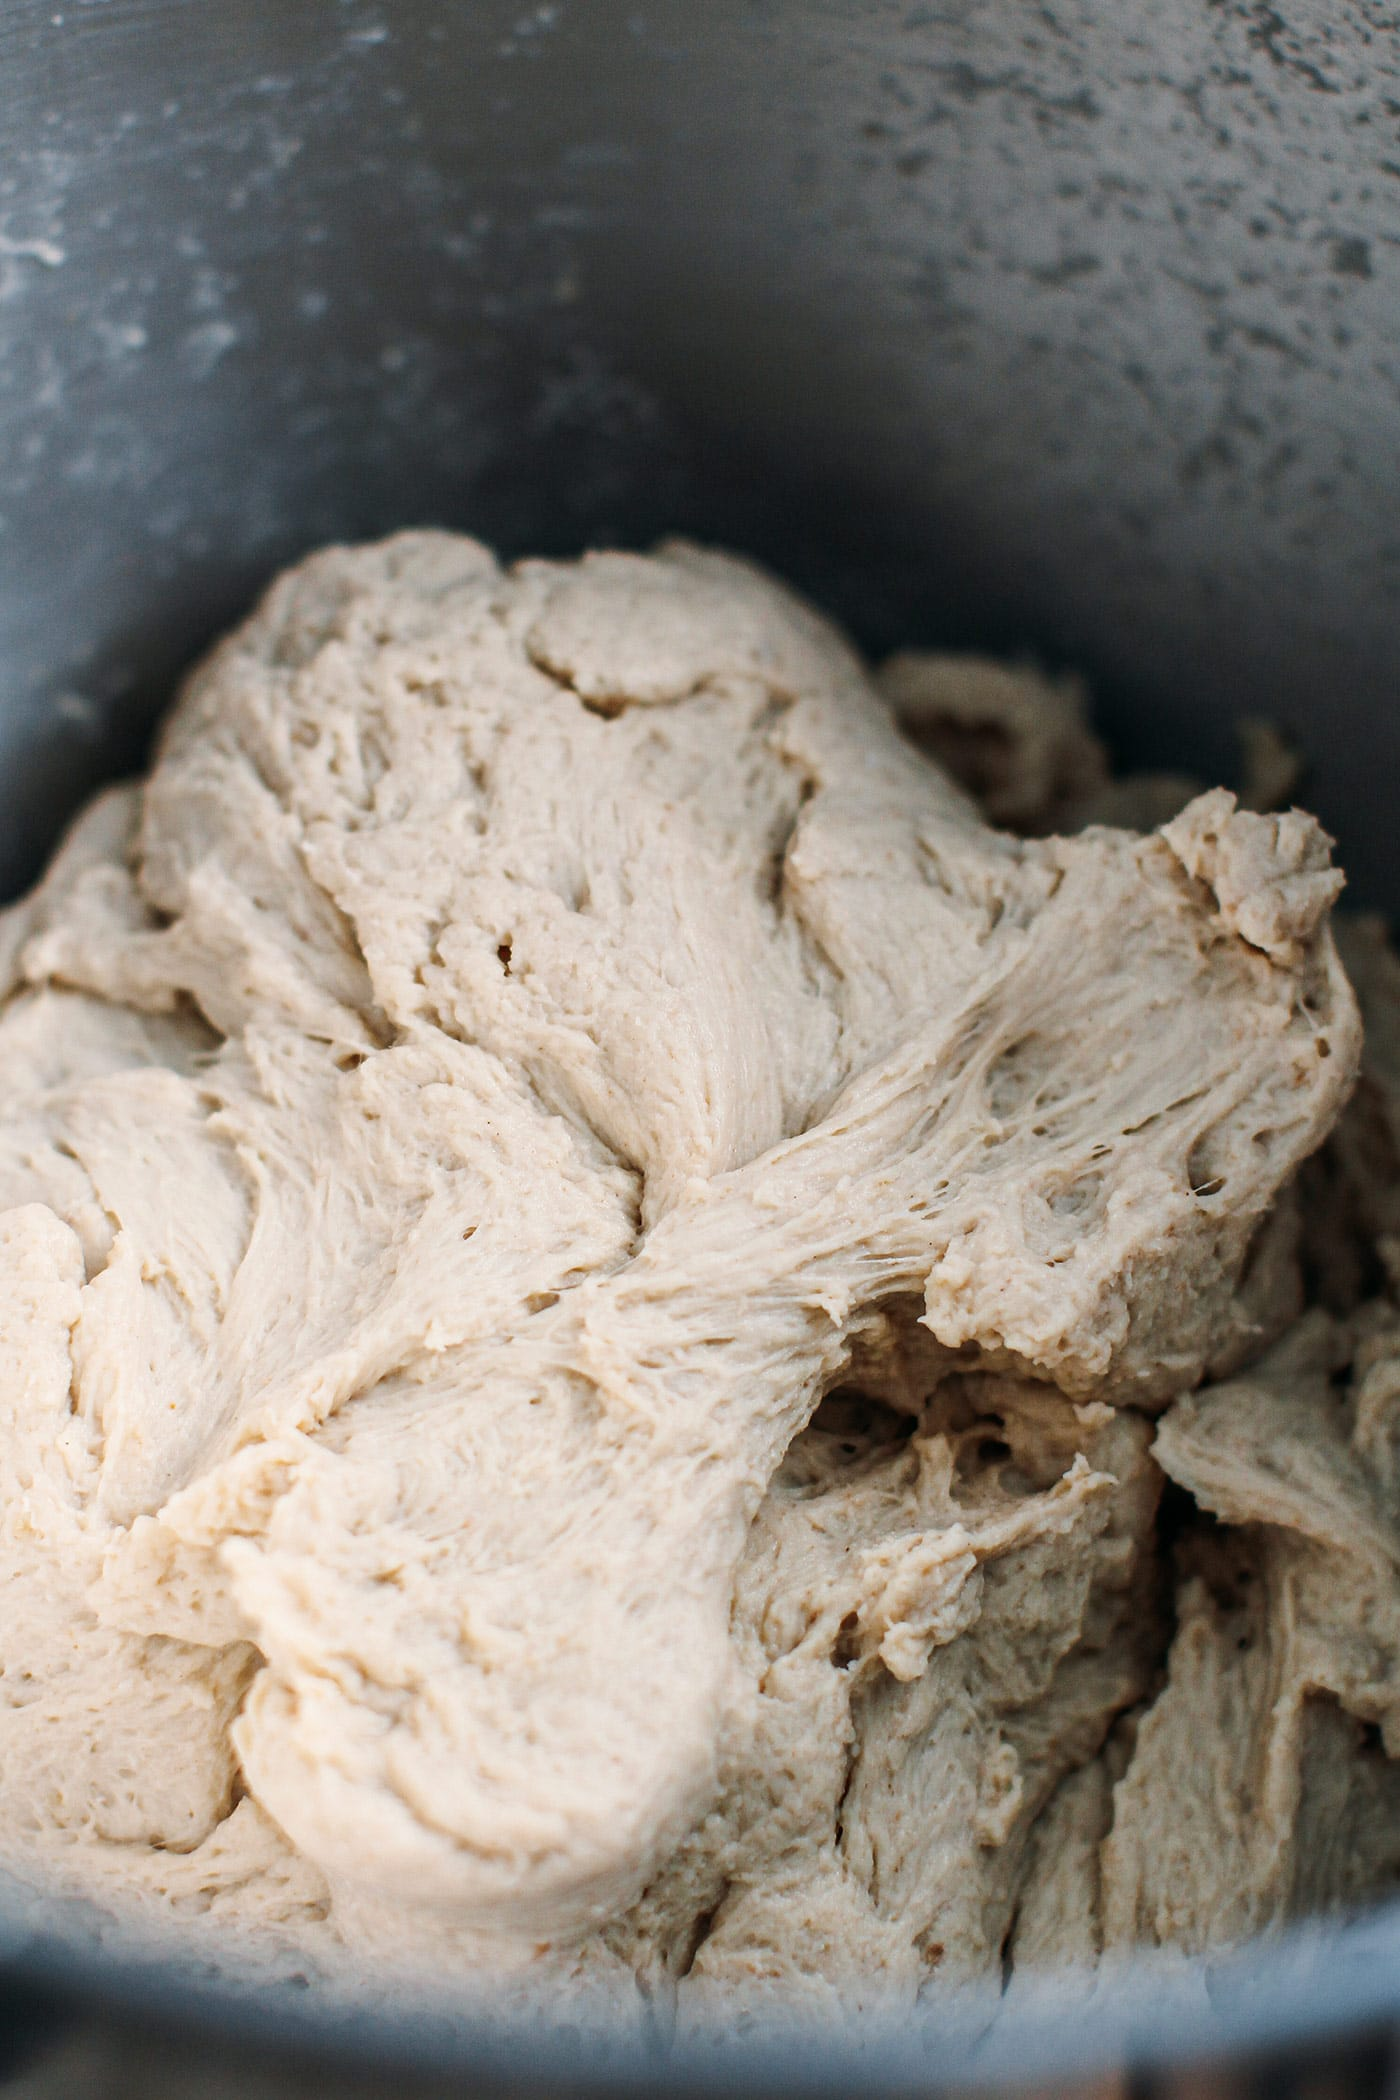 Vegan chicken seitan dough that looks fibrous.